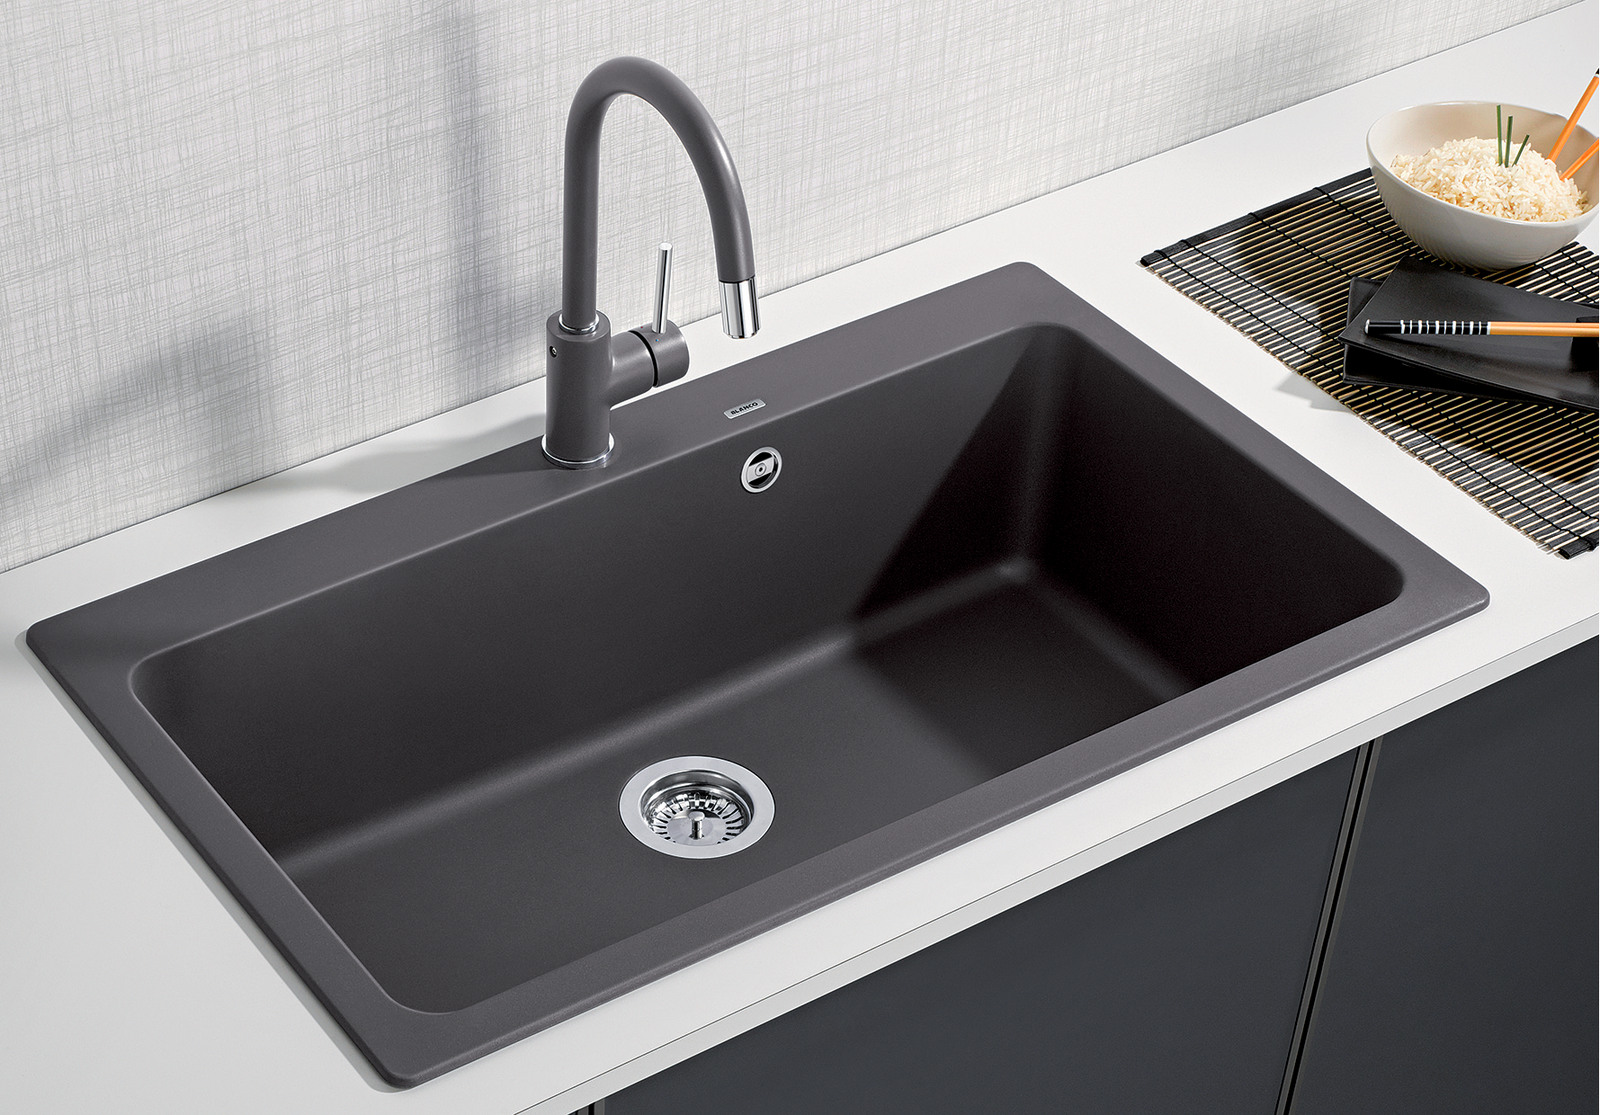 Blanco Naya XL 9 Single Bowl Quartz Sink